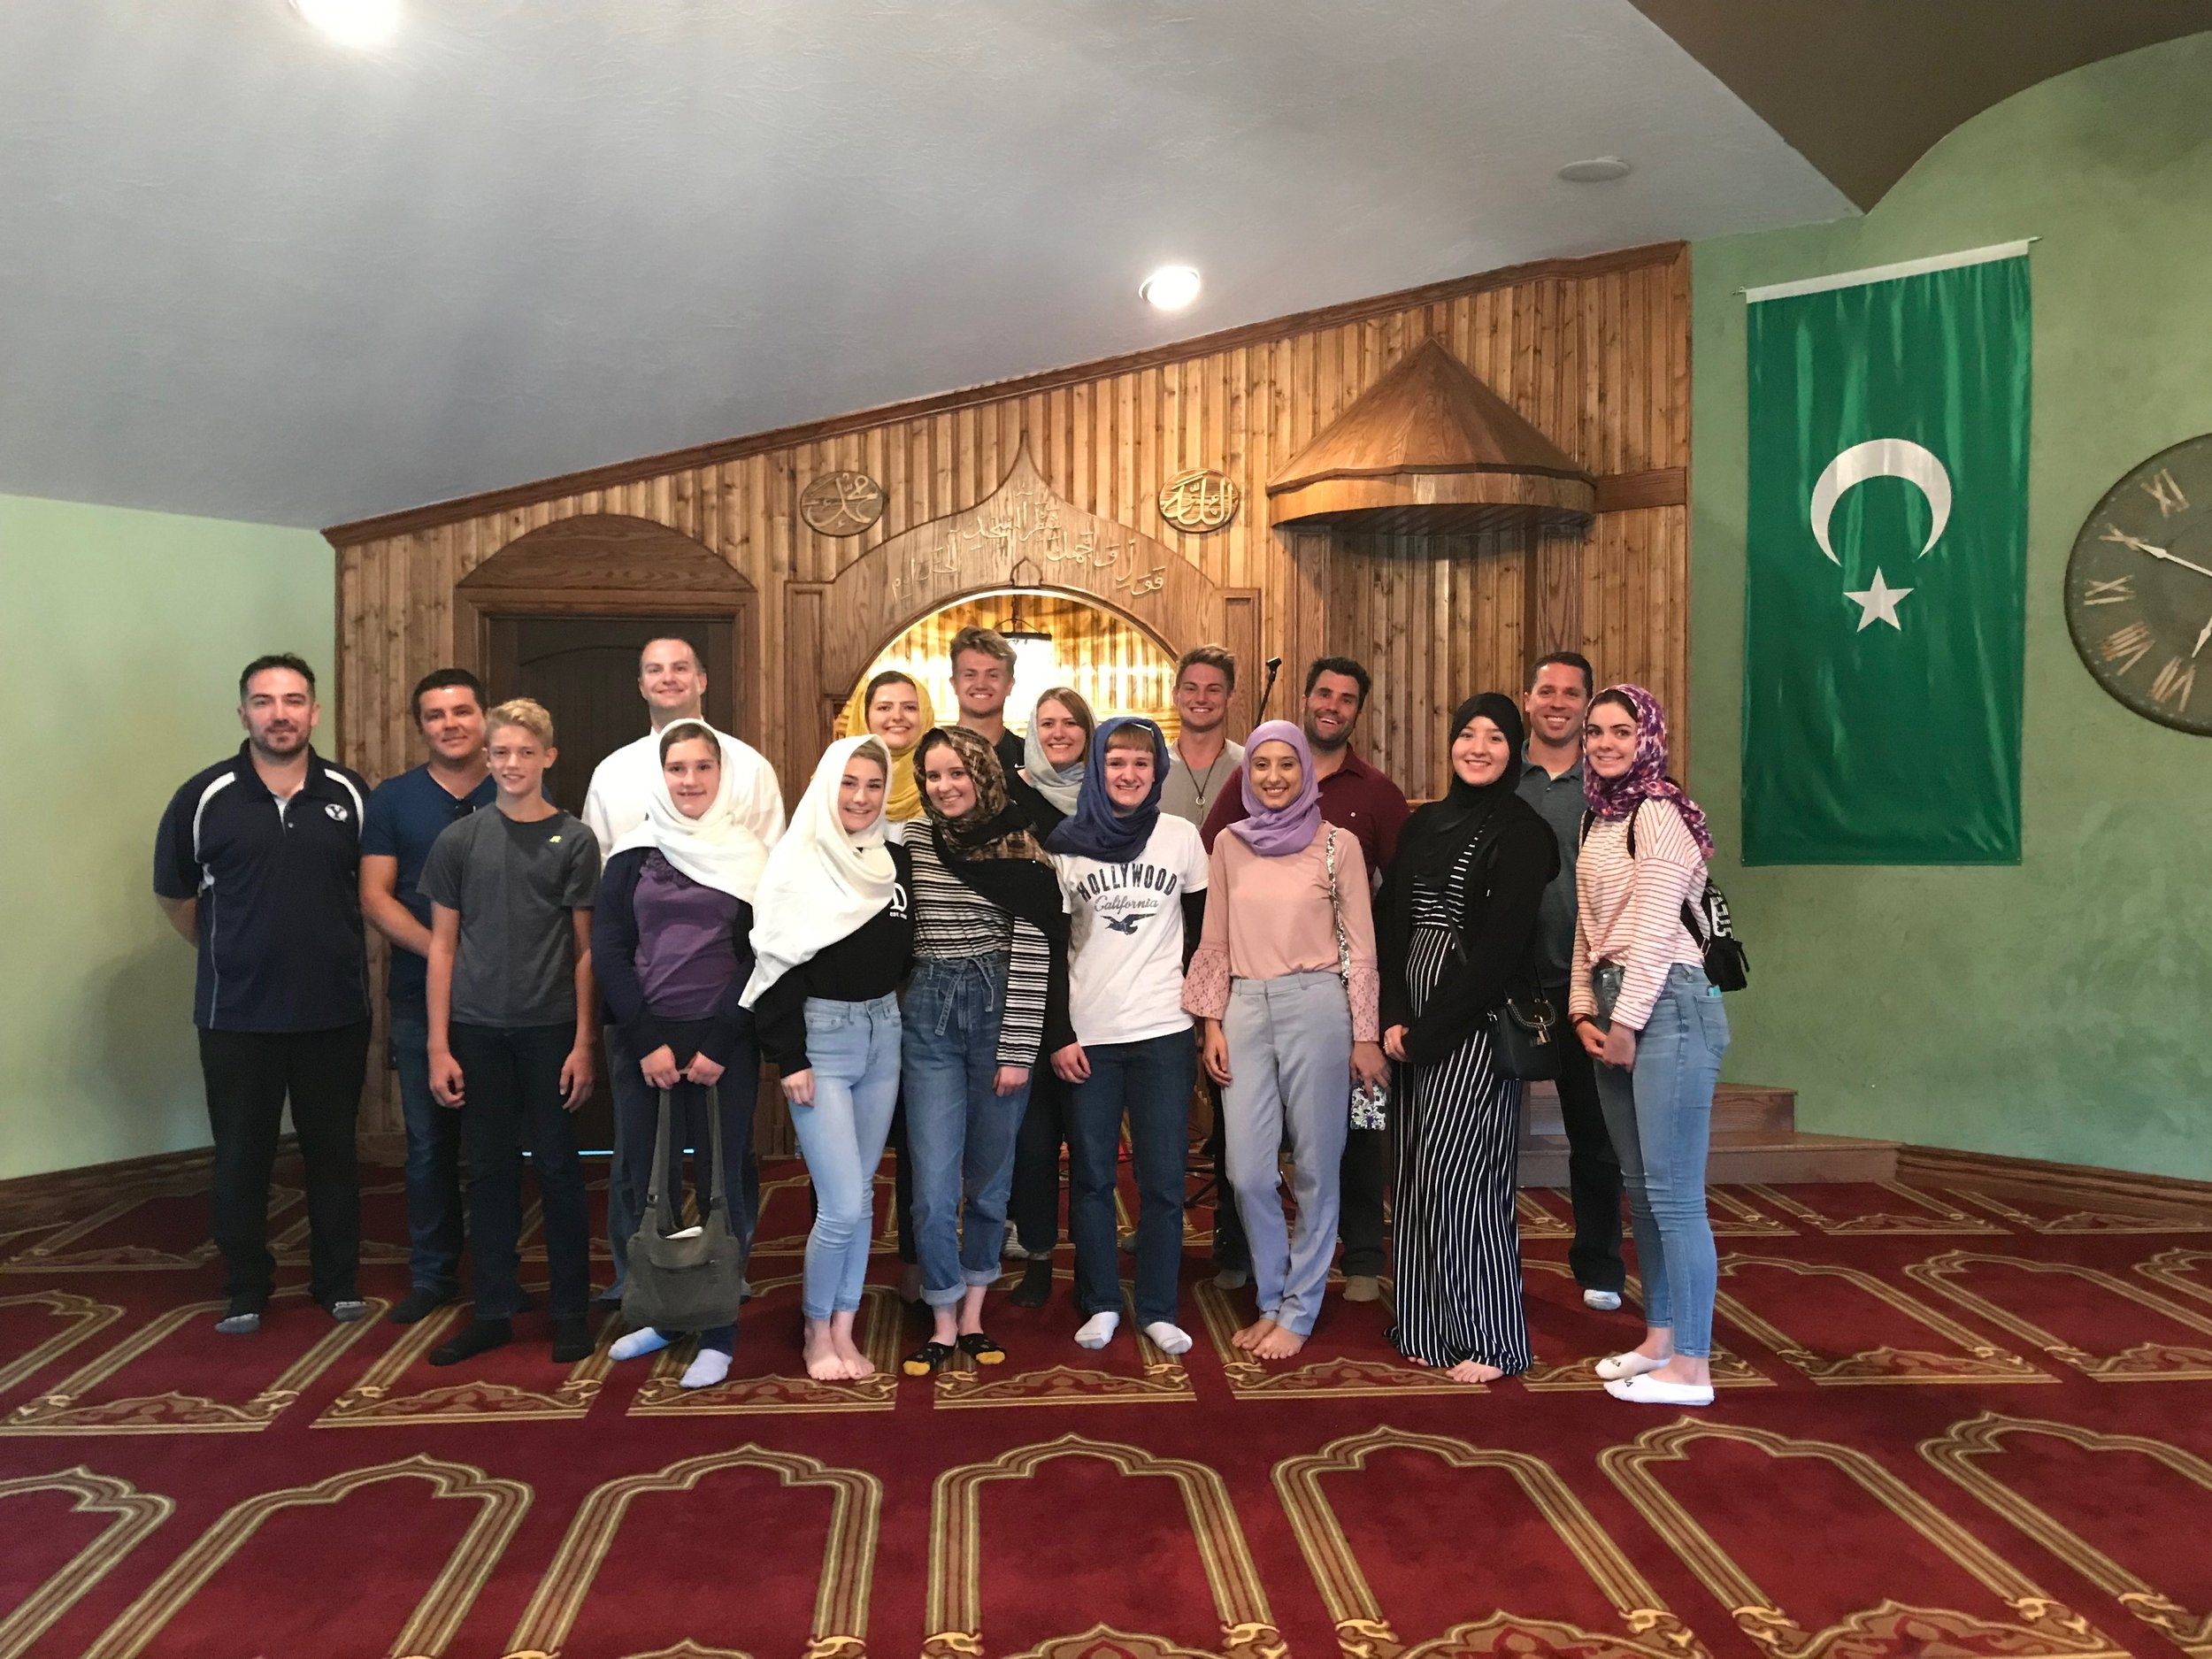 Youth from LDS and Bosnian American Muslim communities work together on common project in Salt Lake City, Utah.